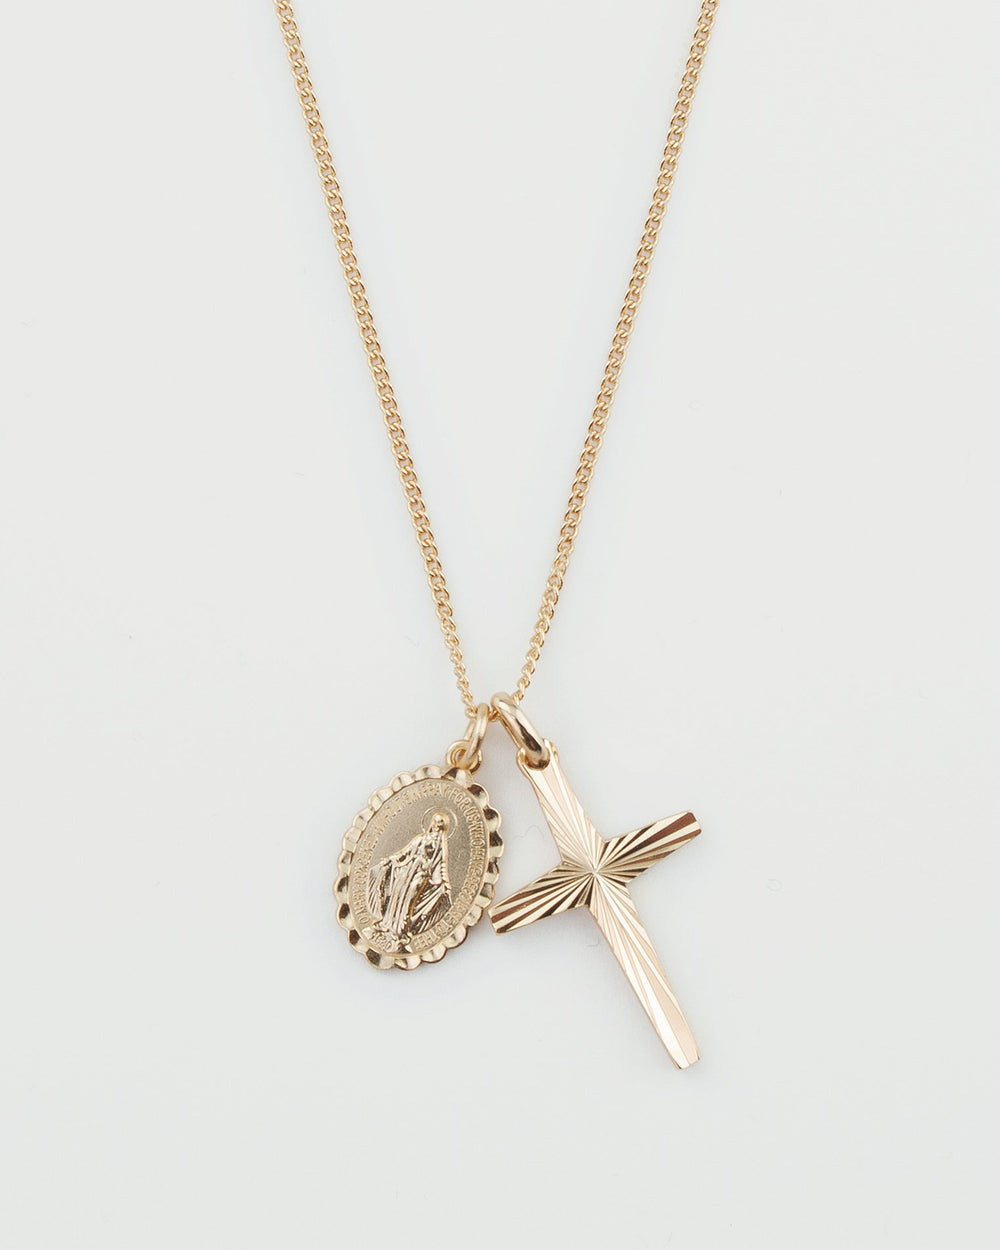 Magdalene Gold Vermeil Double Pendant Necklace